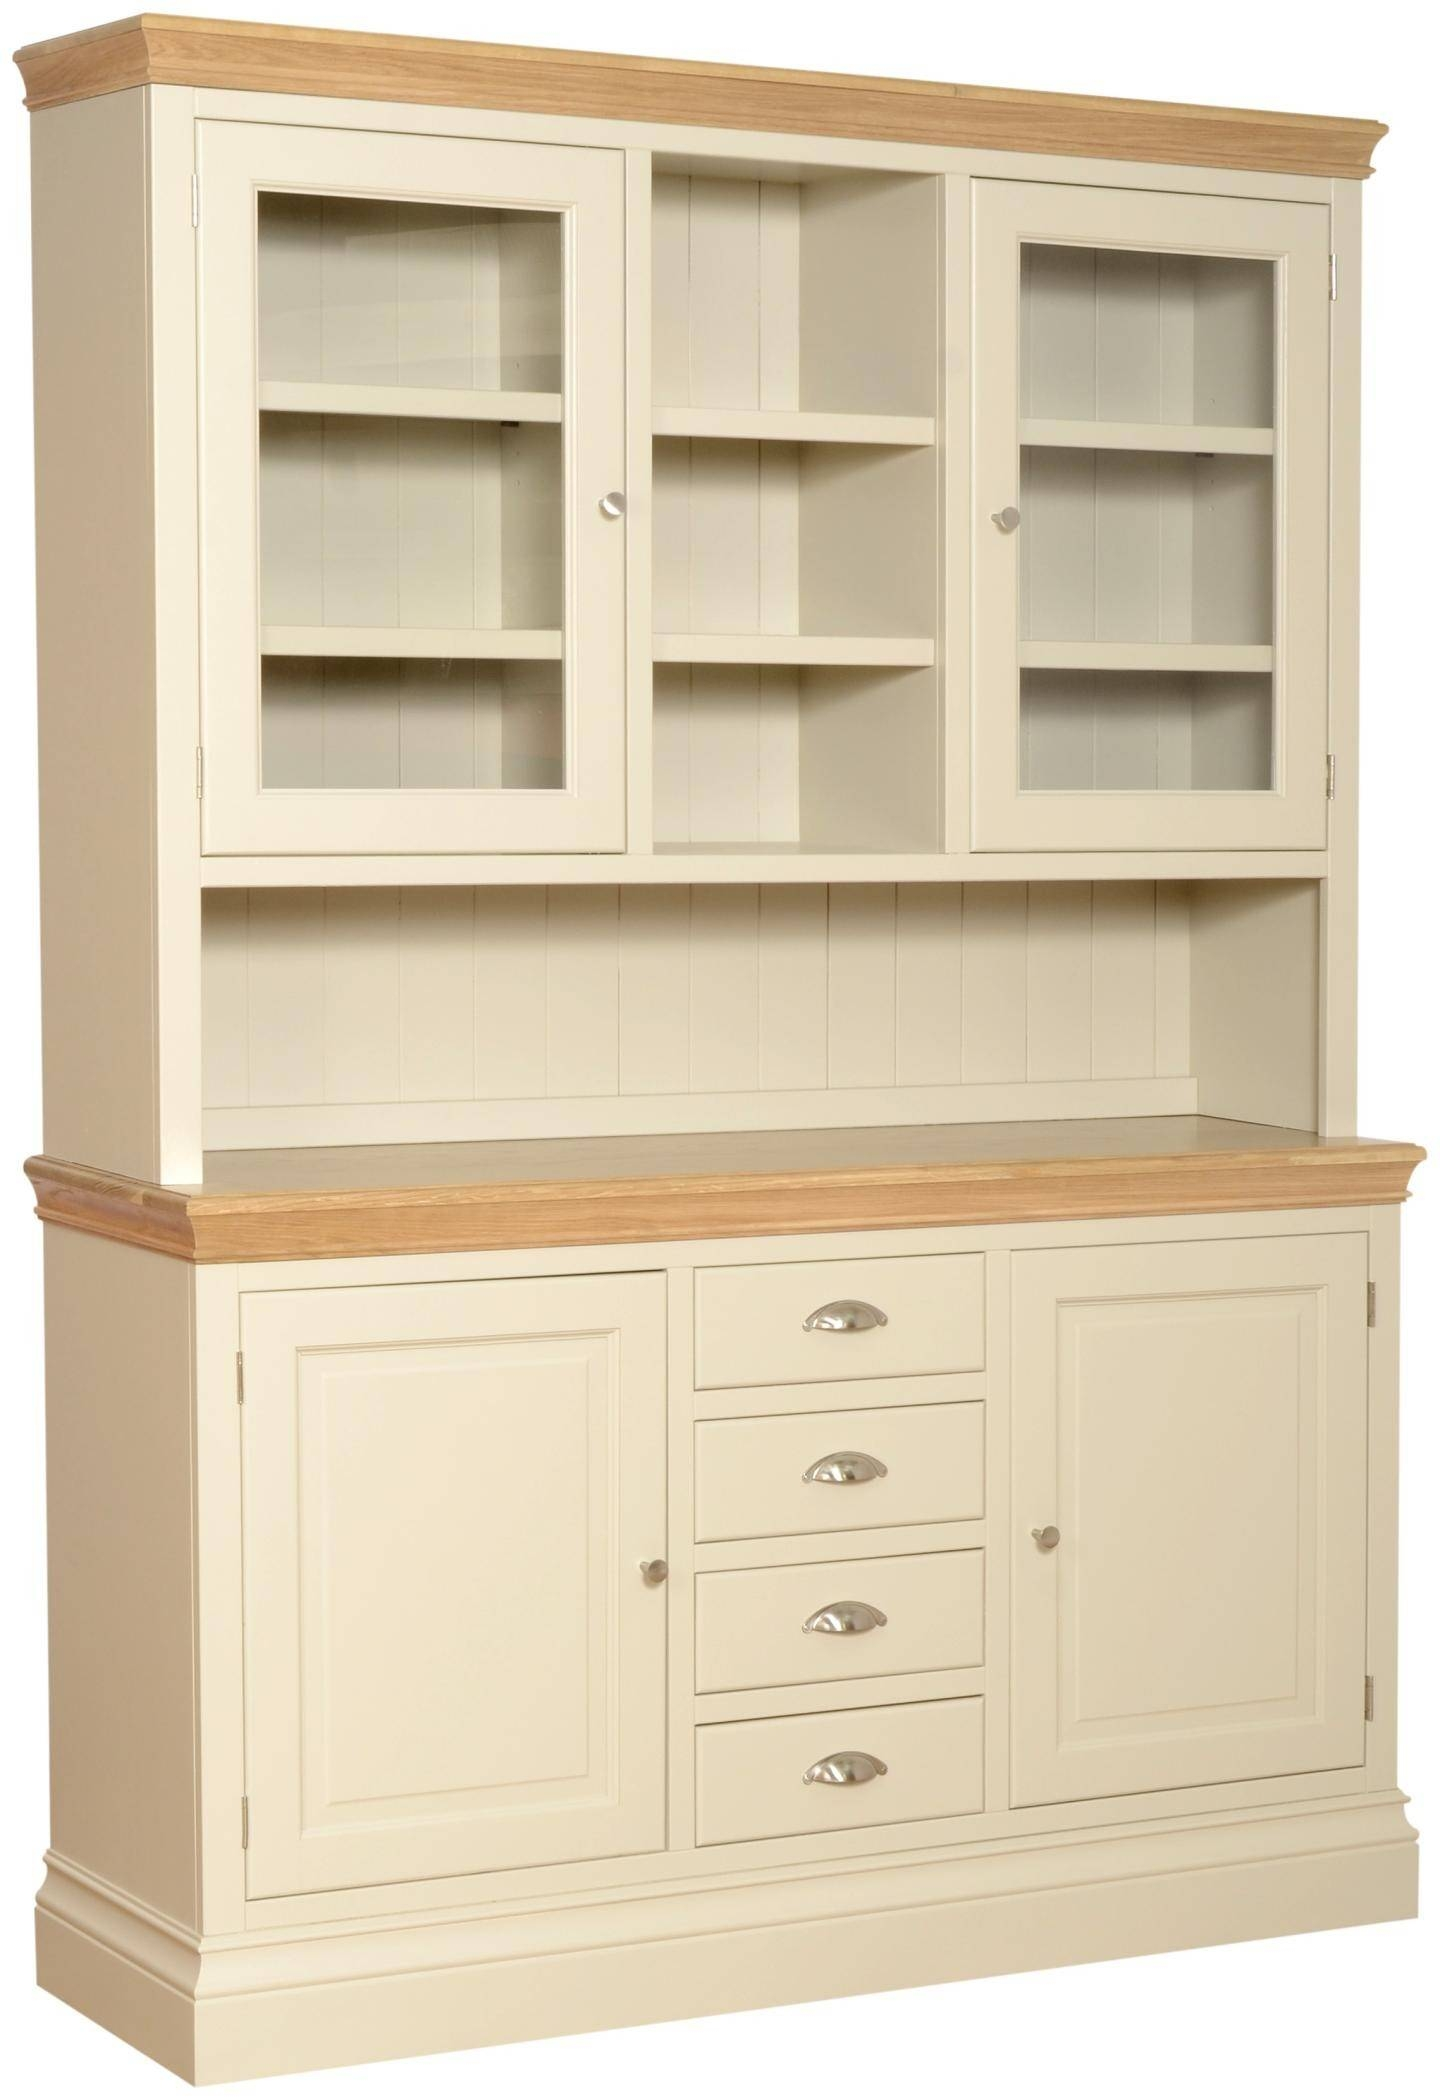 Emily 1.5M Sideboard With Glass Doors Dresser Top Painted With Oak Top for Sideboards With Glass Doors (Image 4 of 30)